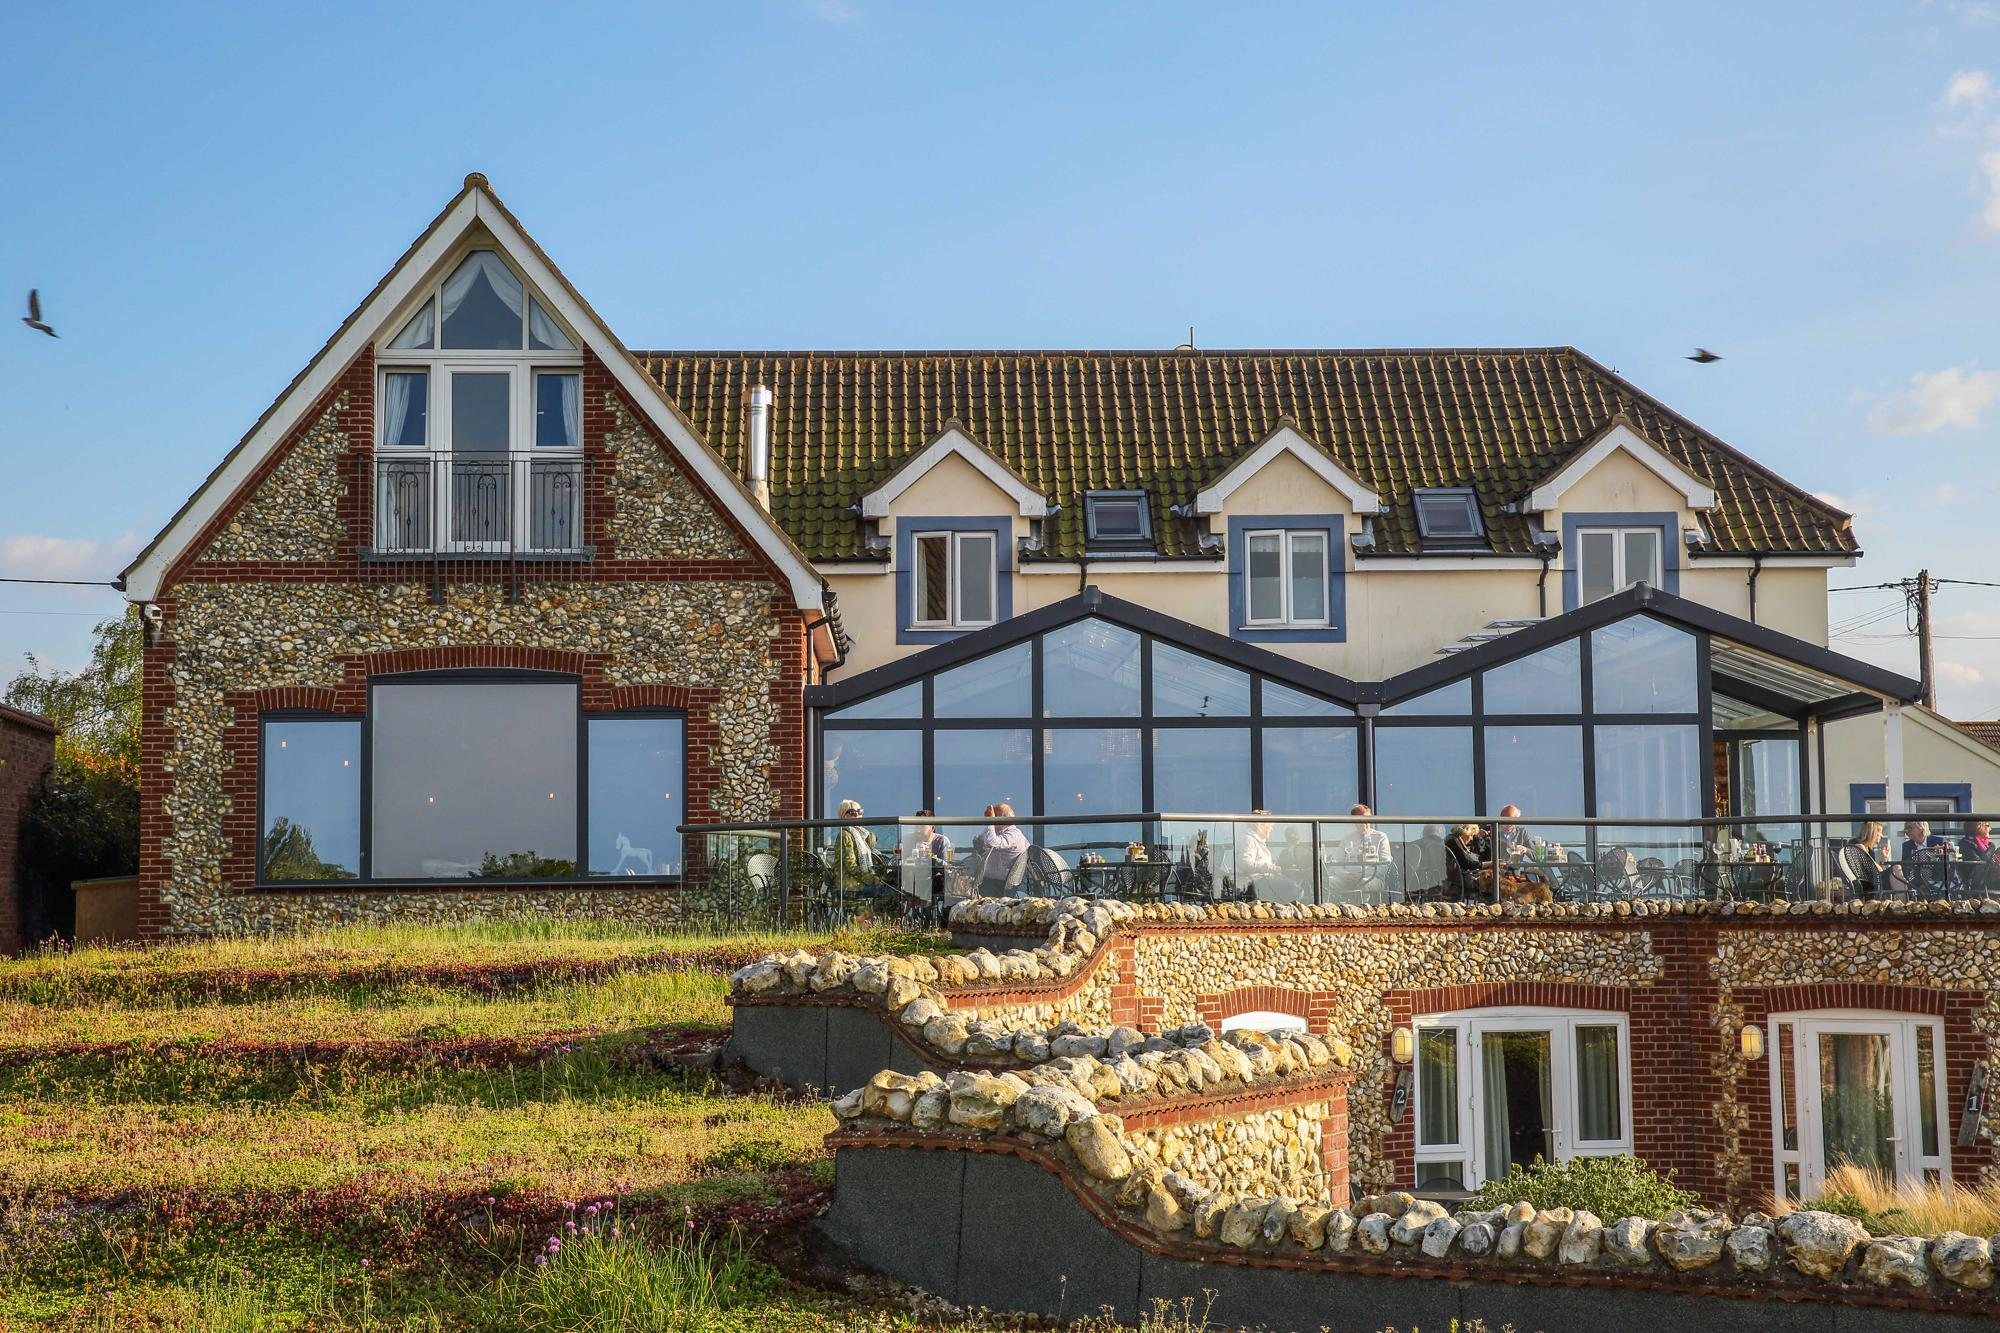 Anglian Country Inns - Cool Places to Stay in the UK